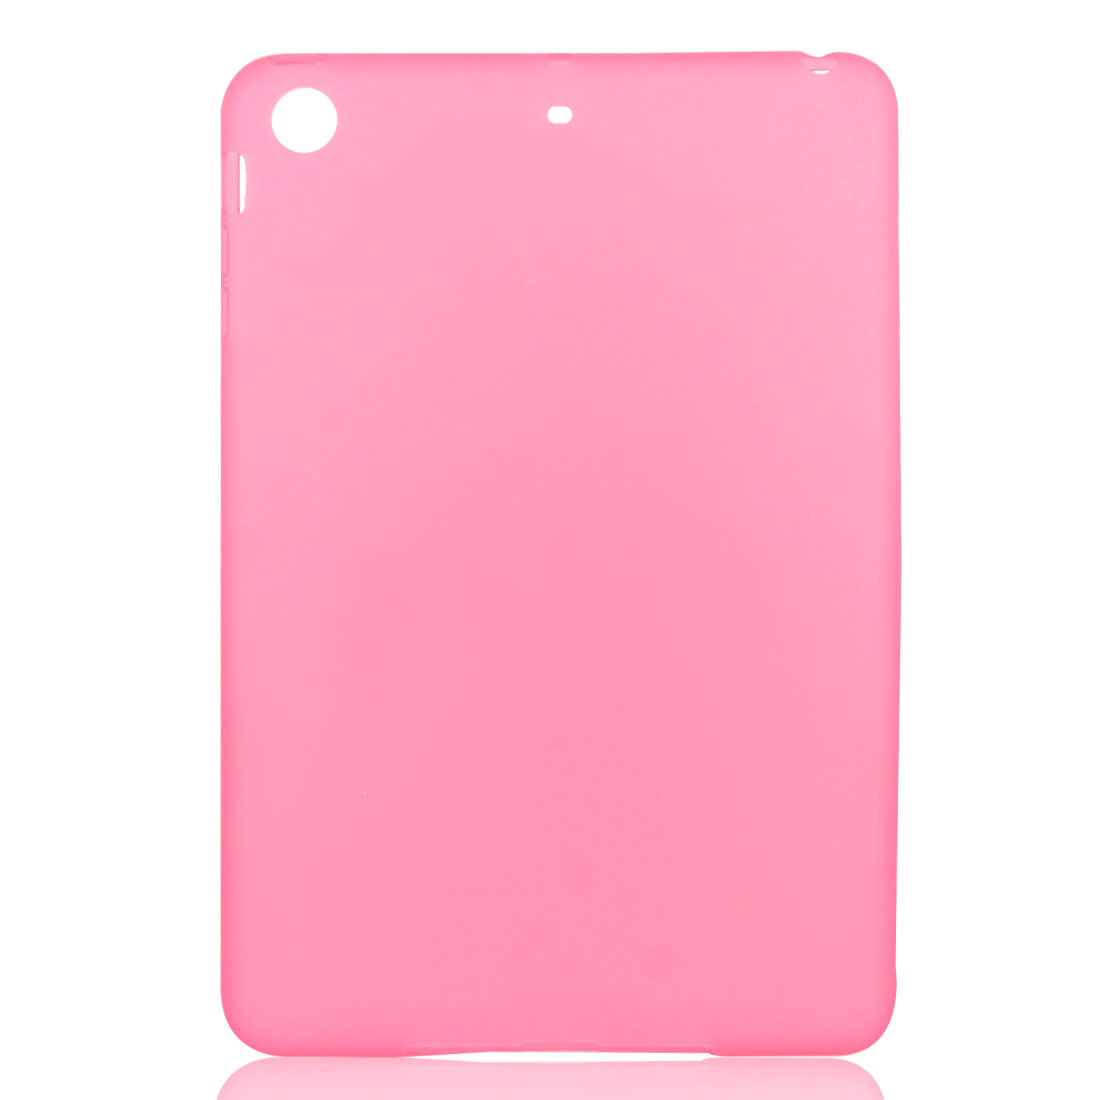 Pink Soft Plastic Case Cover Protector for Apple iPad Mini